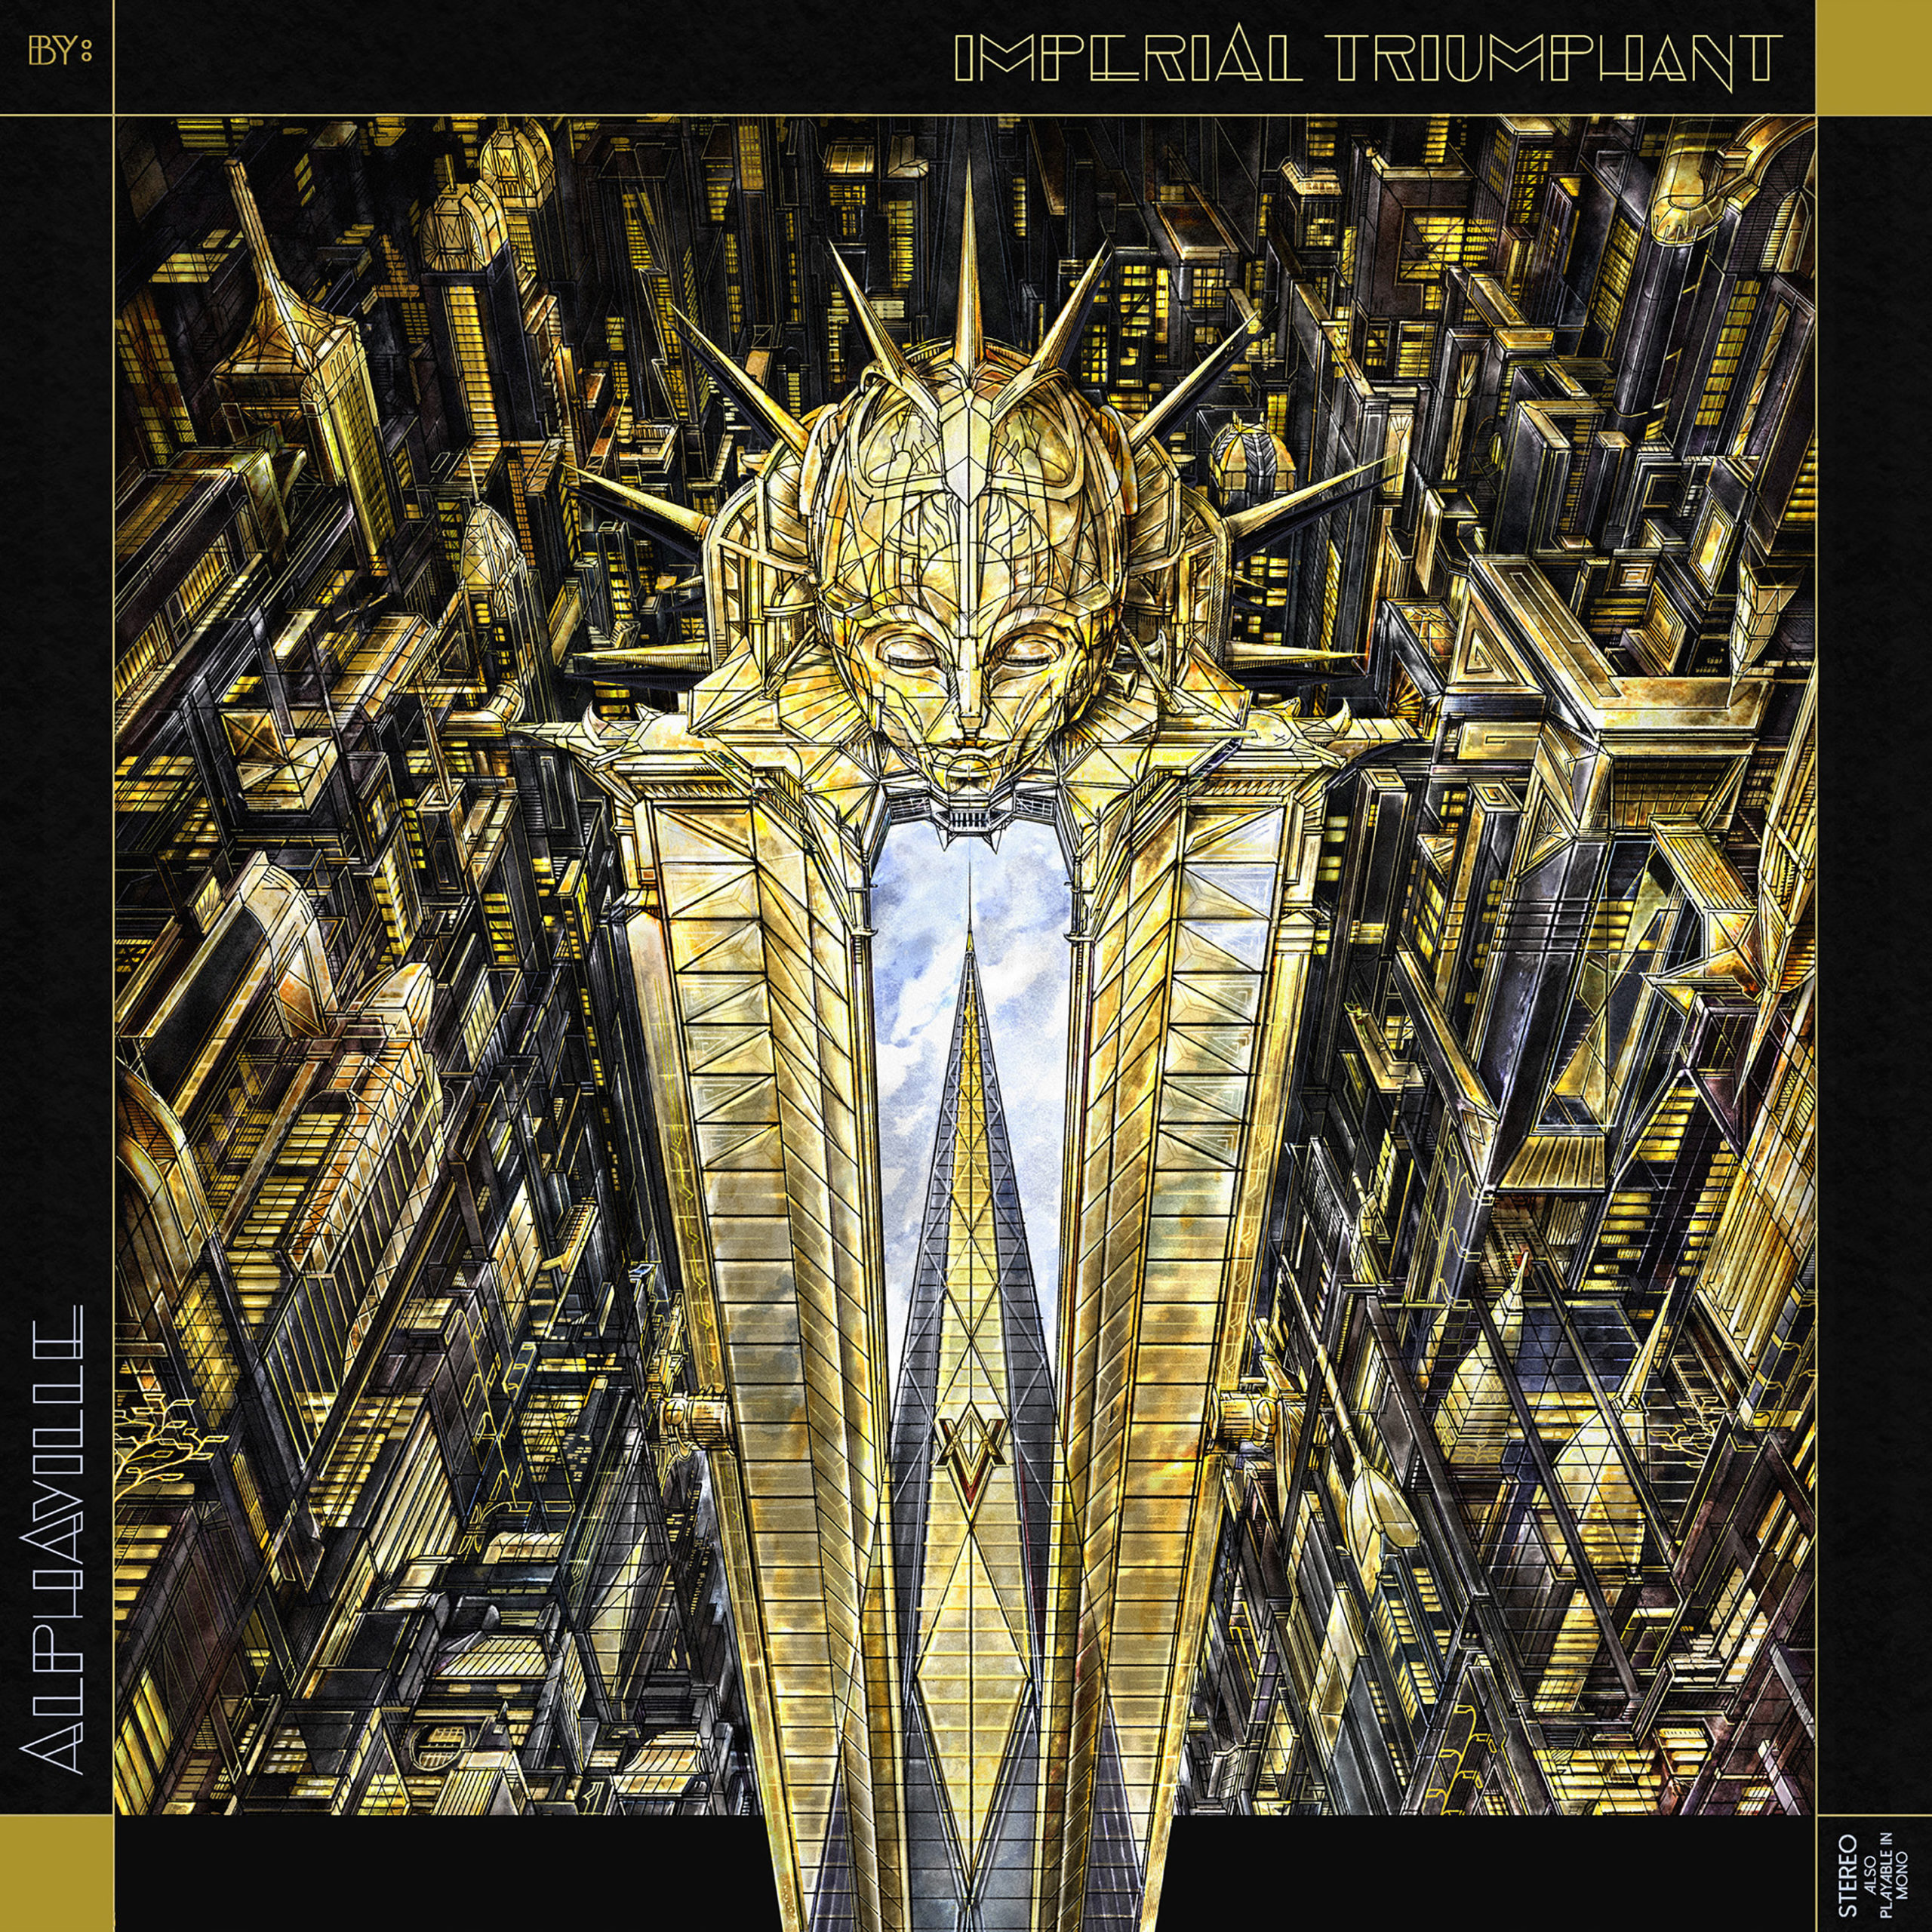 Critique d'album: IMPERIAL TRIUMPHANT Alphaville